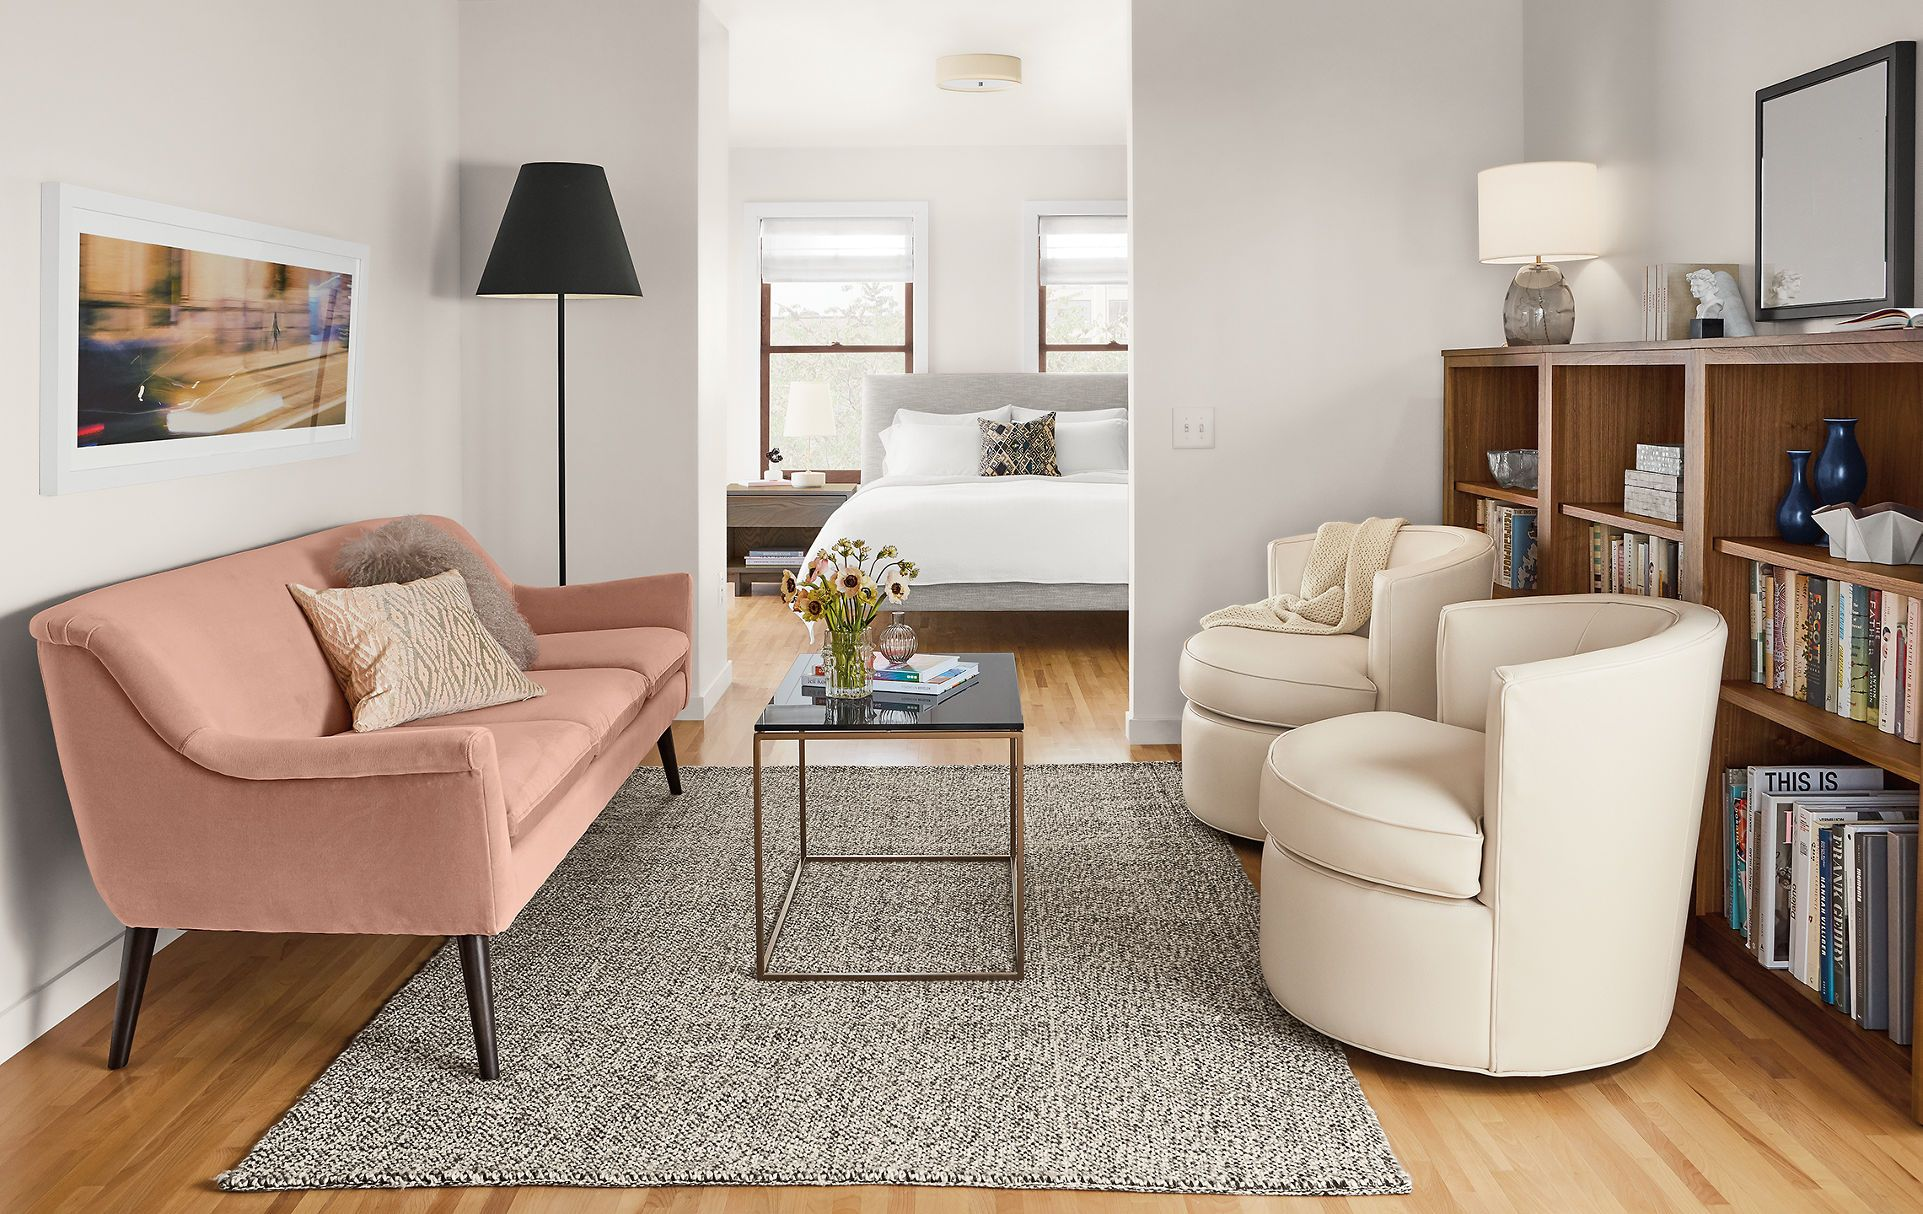 Ideas And Advice Furniture For Small Spaces